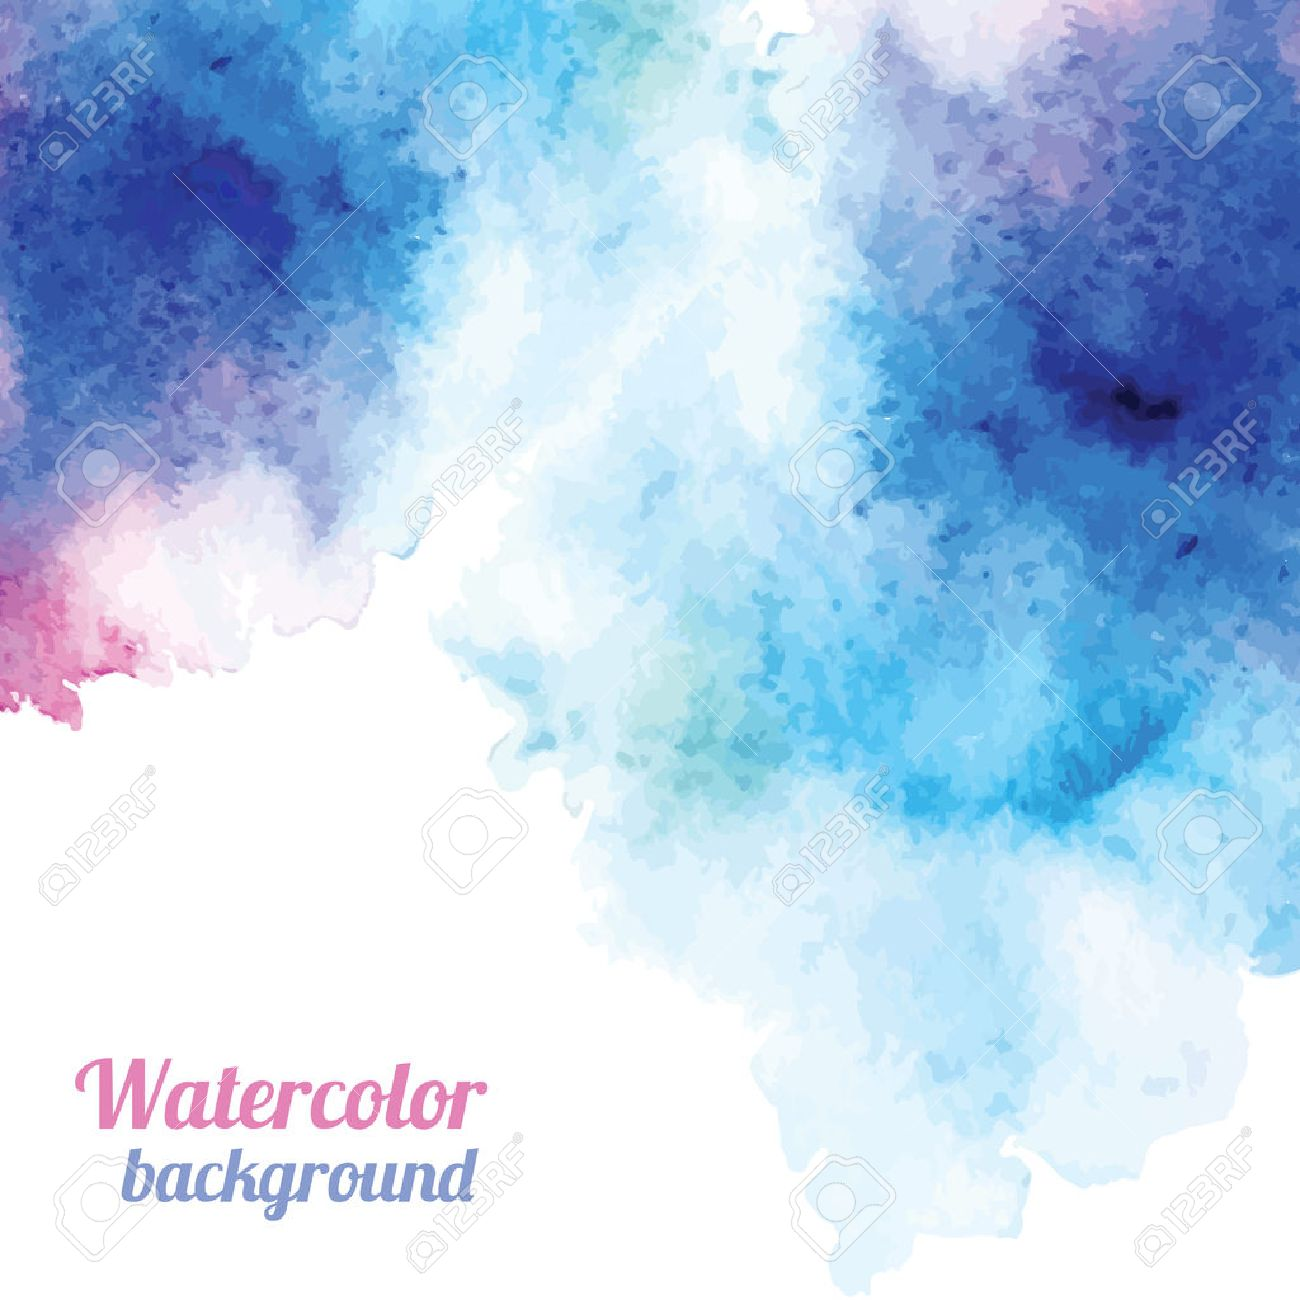 vector watercolor background vector illustration for your design